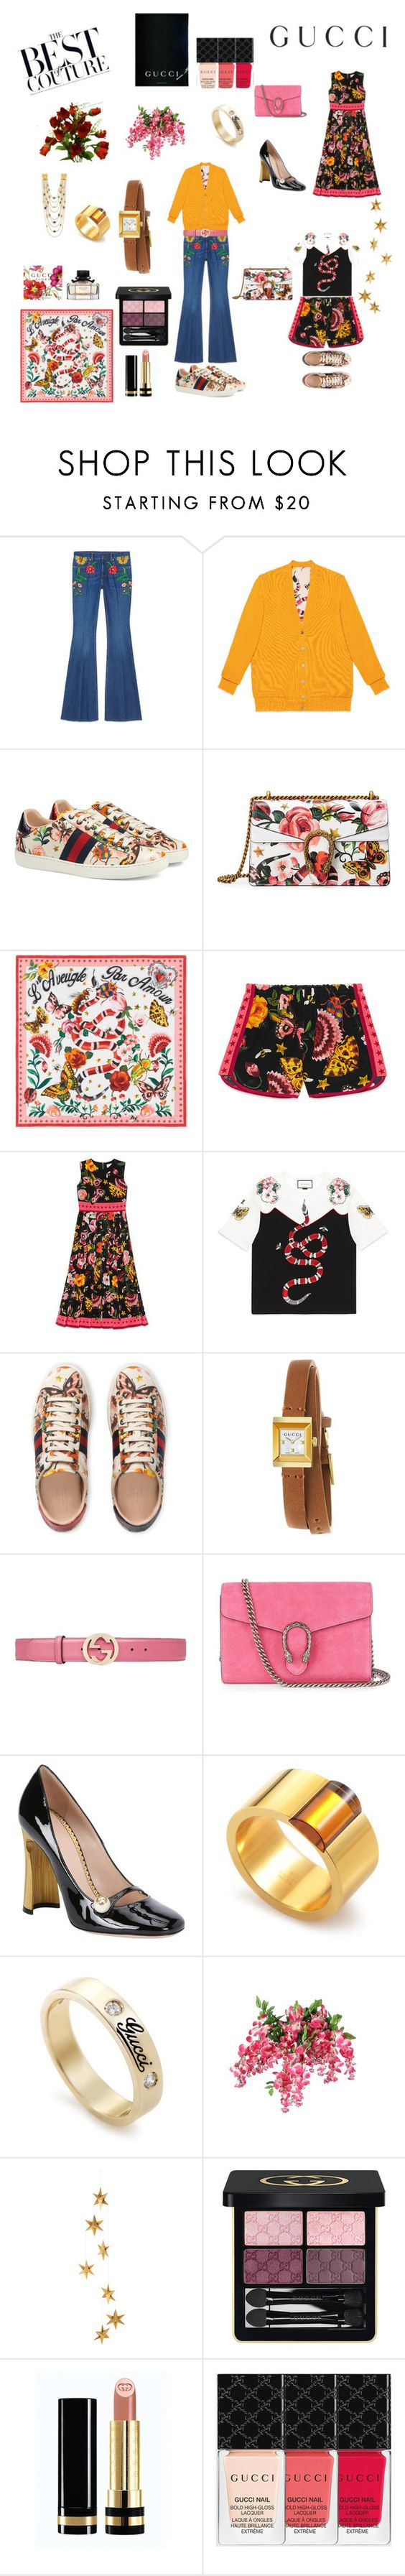 """Presenting the Gucci Garden Exclusive Collection: Contest Entry Gucci Garden"" by acooper7179 ❤ liked on Polyvore featuring Gucci, Livingly and gucci"